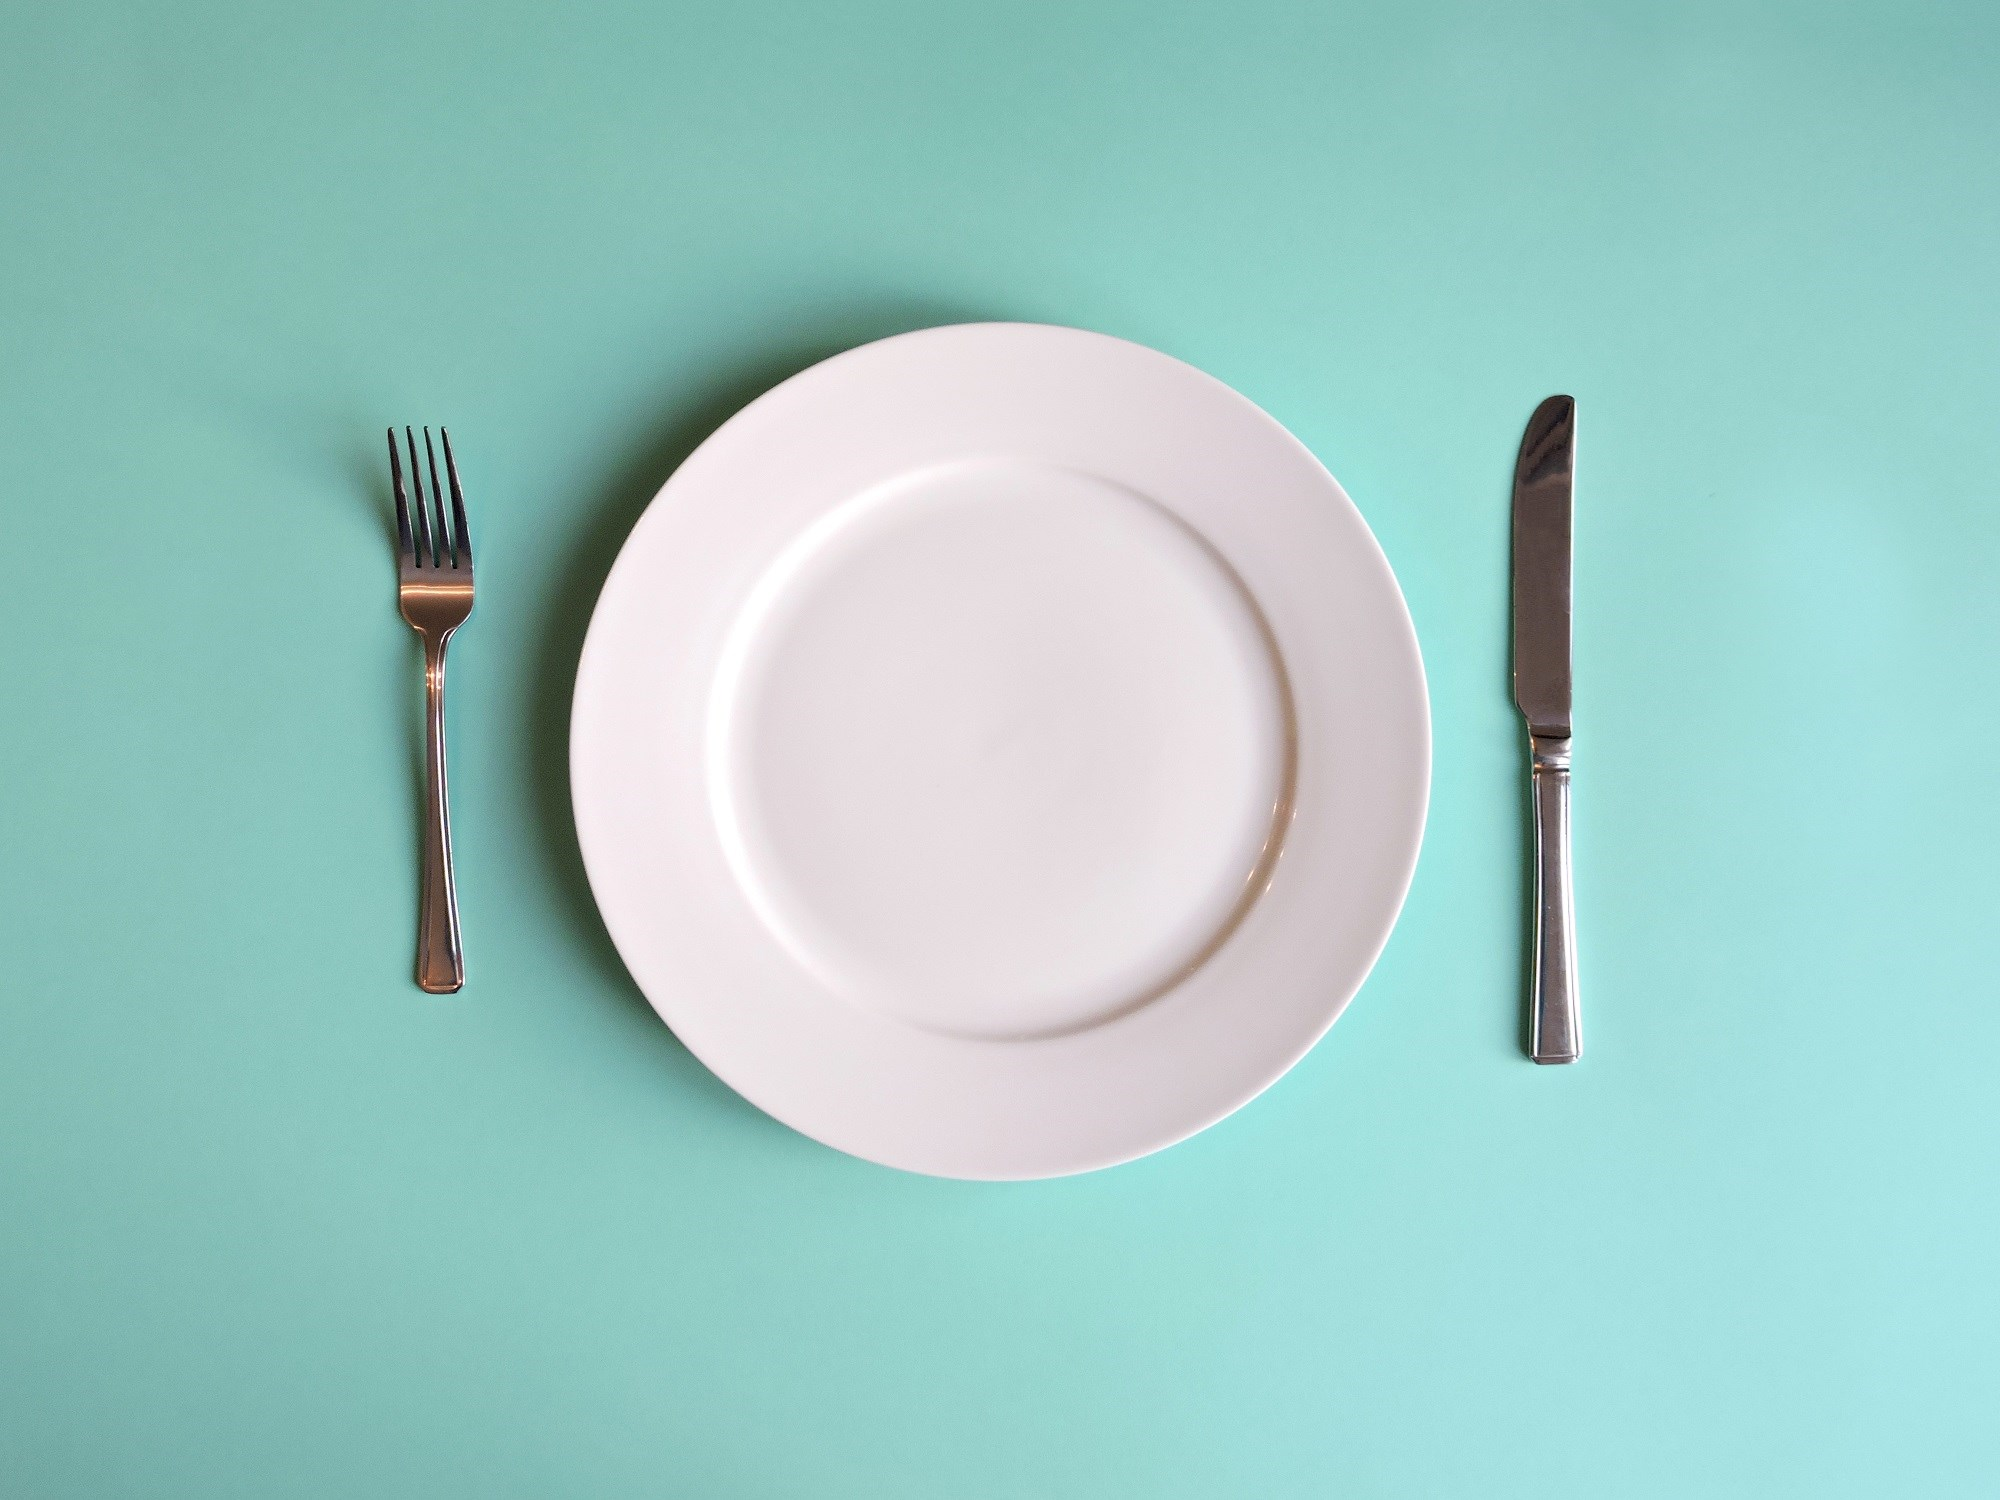 Periodic Fasting May Reduce Medication Use in T2D